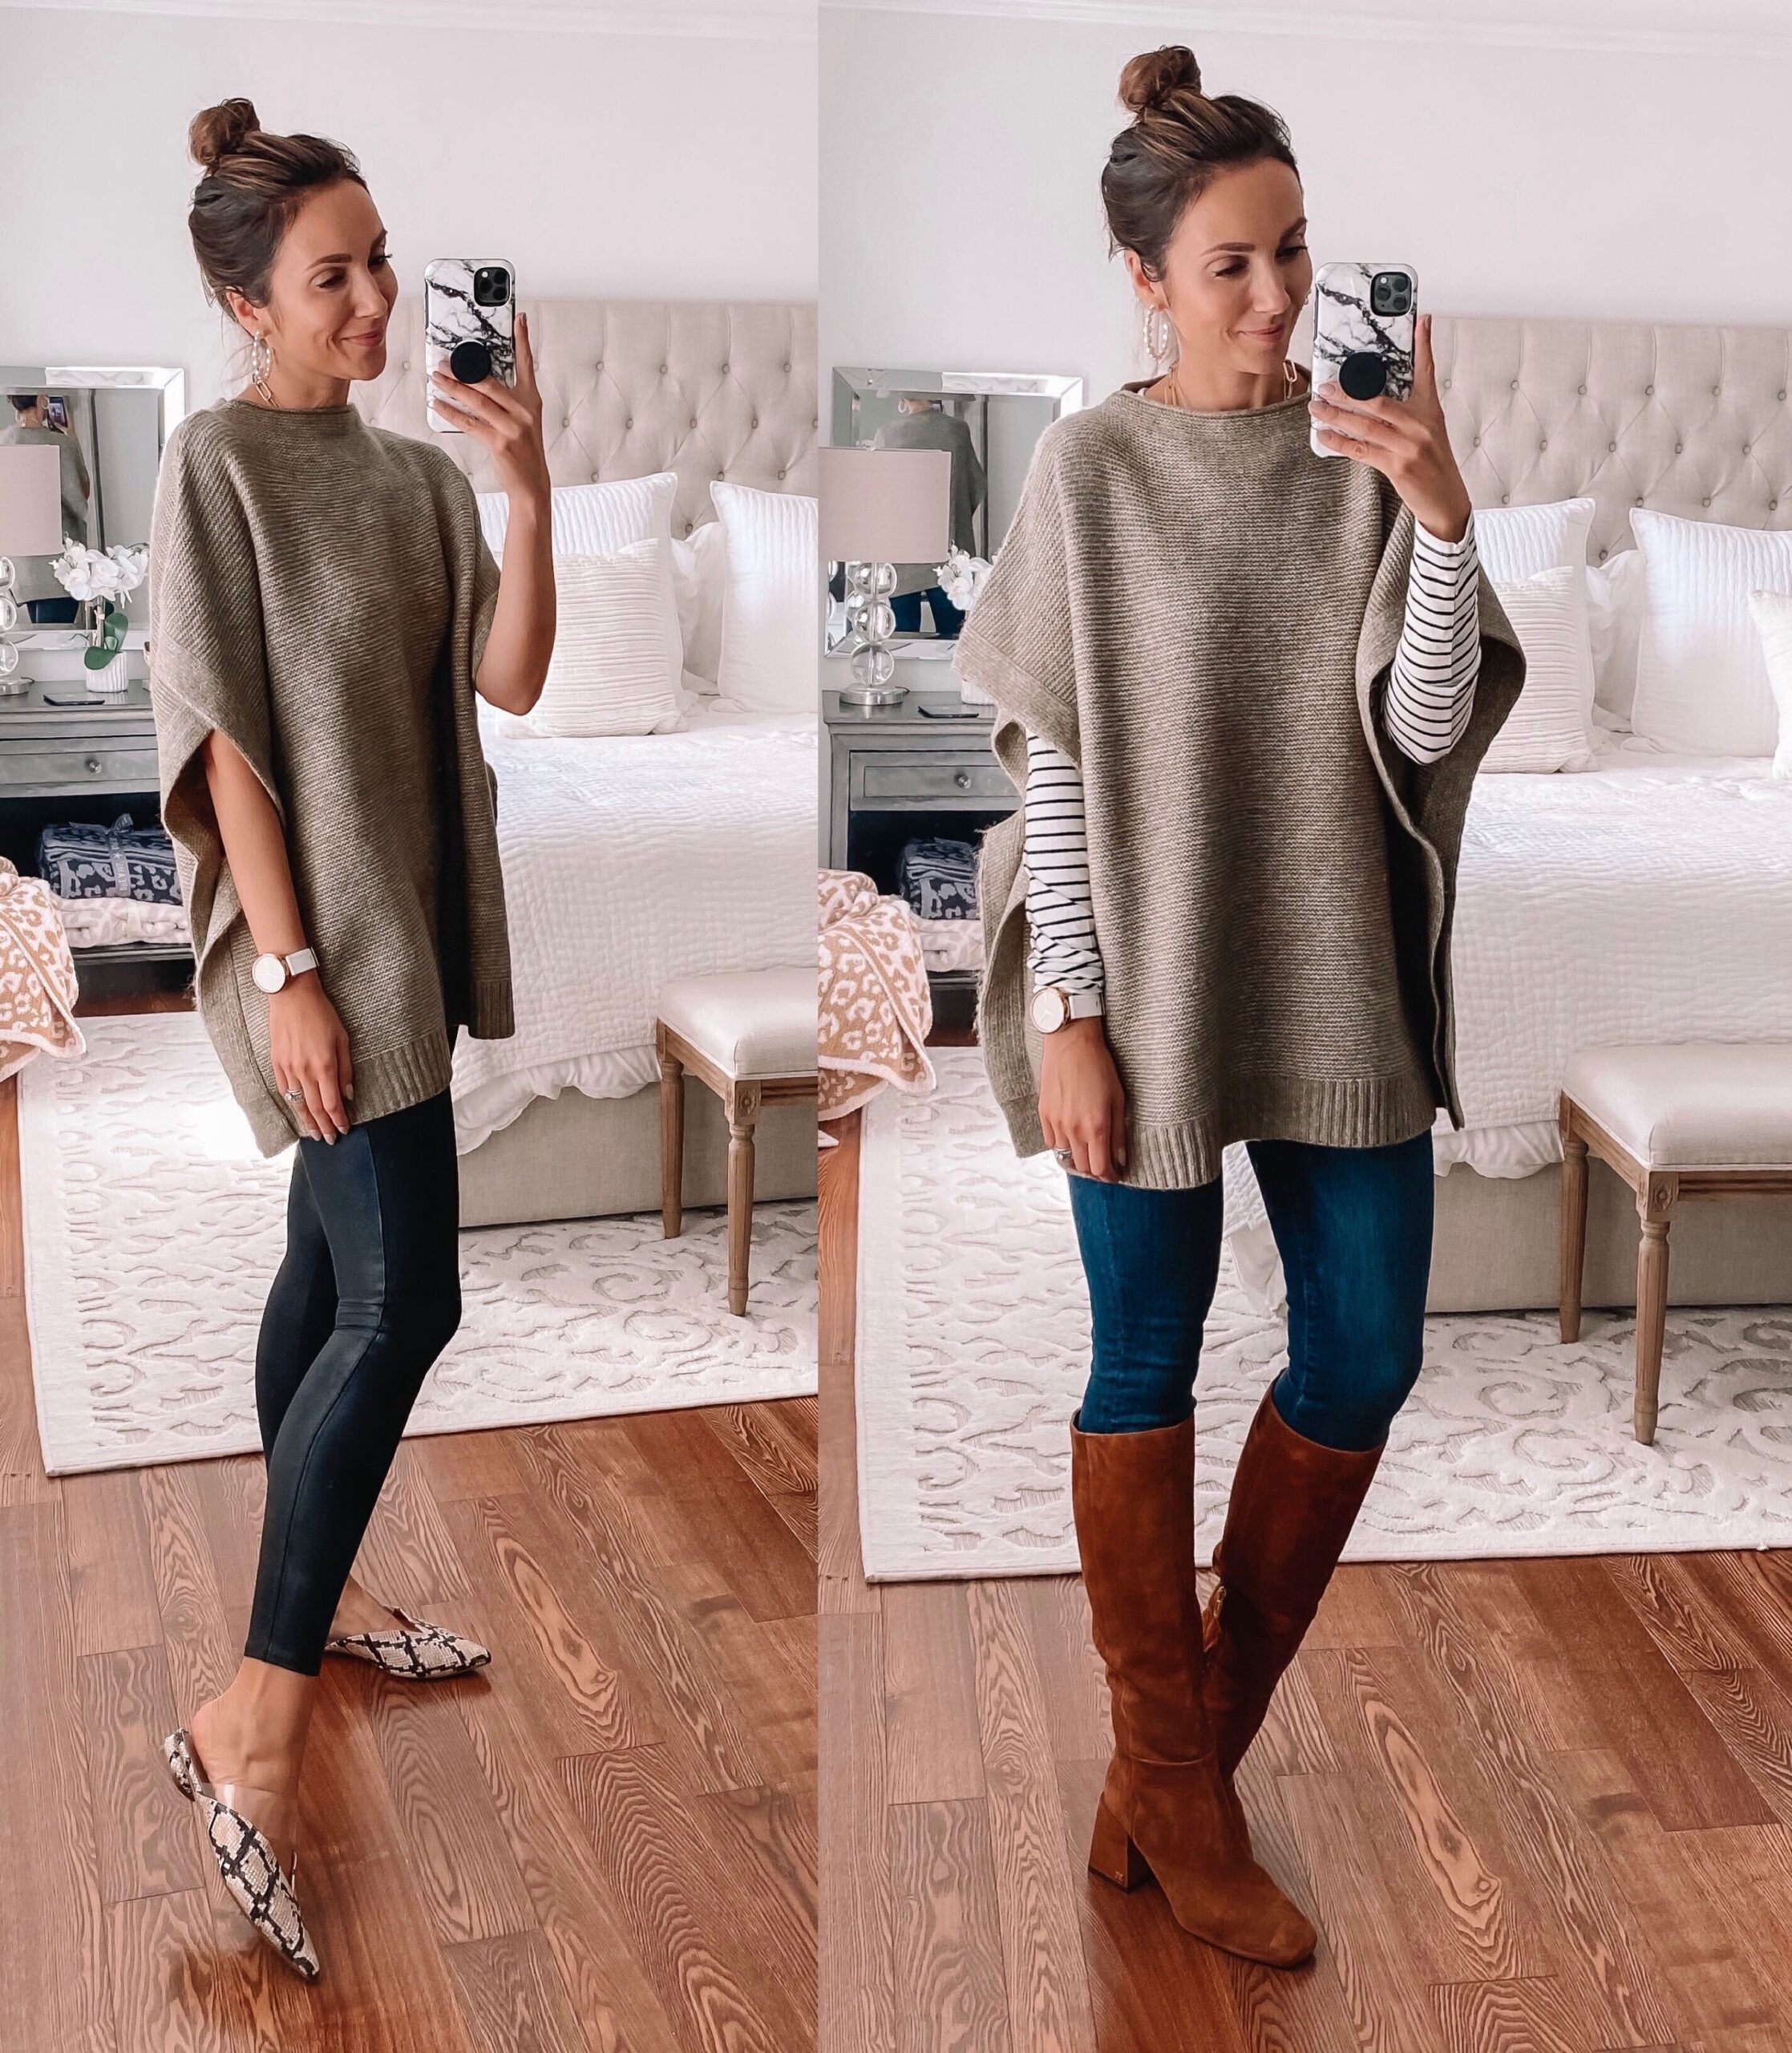 target finds, sweater poncho, fall outfit idea